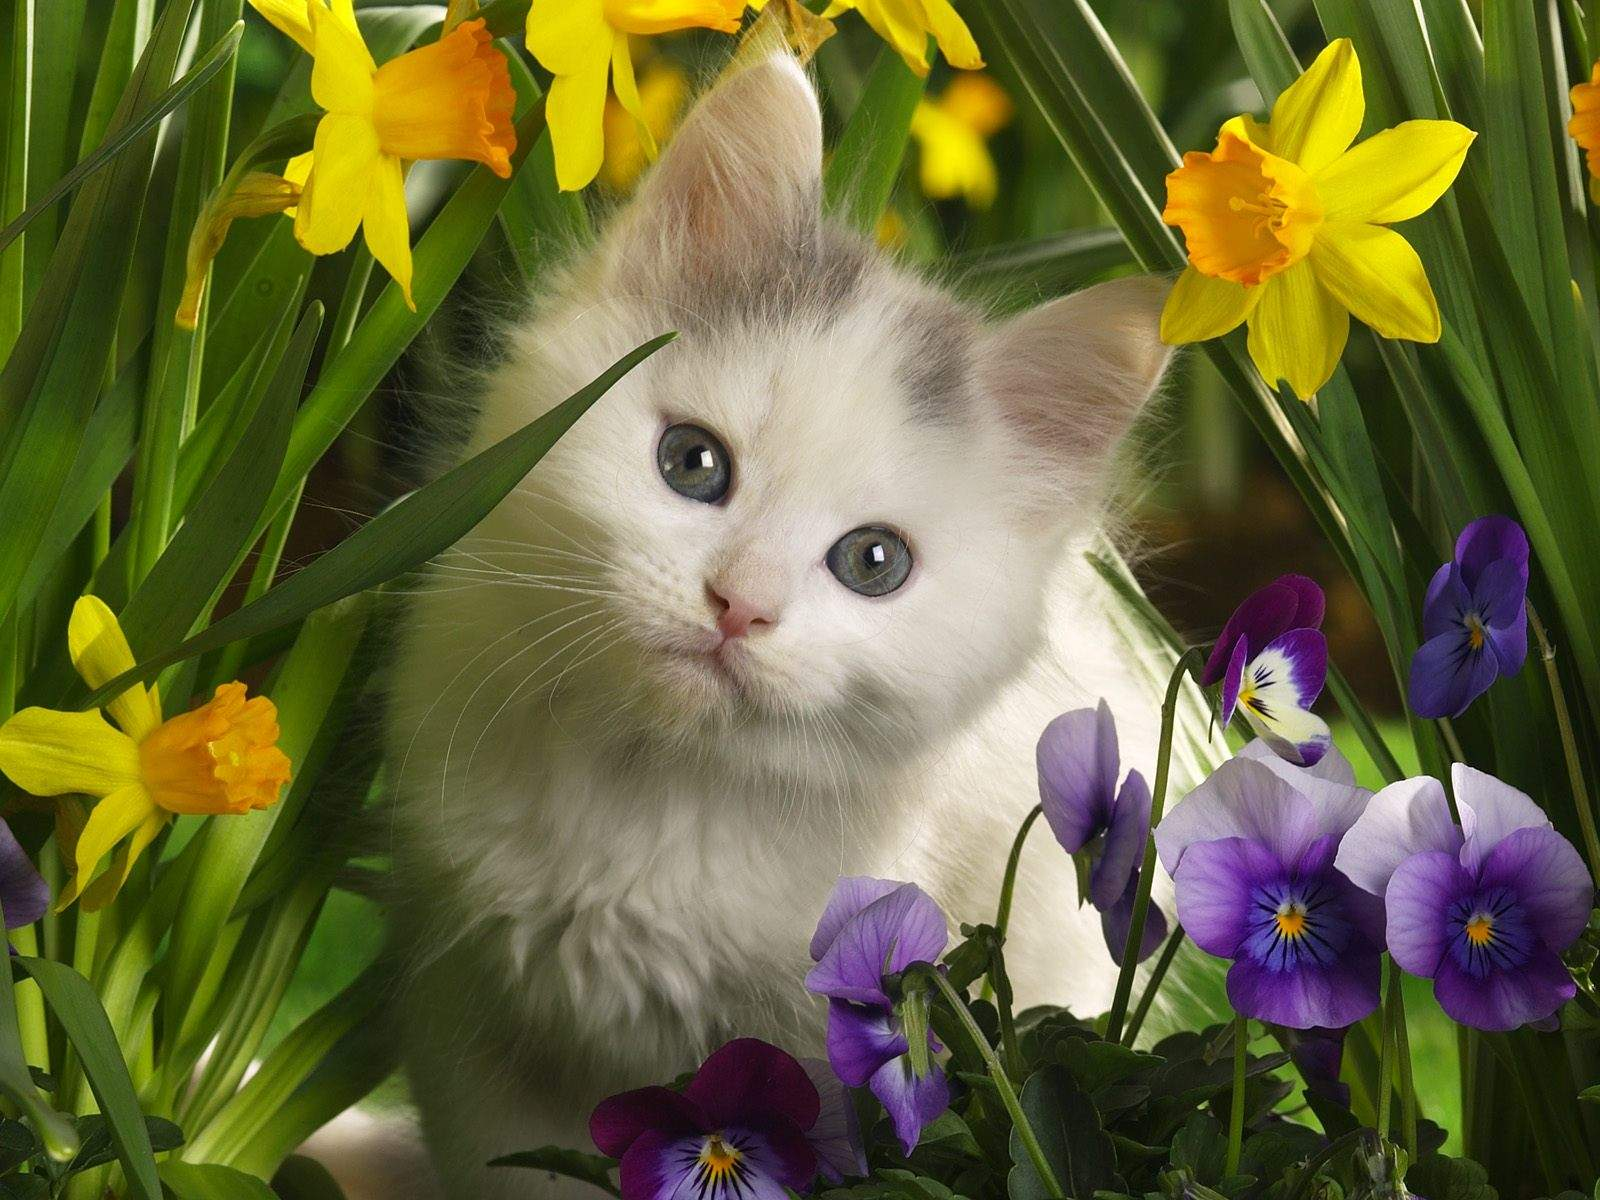 Free Download Baby White Cat Hd Wallpapers Baby White Cat 1600x1200 For Your Desktop Mobile Tablet Explore 73 White Cat Wallpapers Cat Desktop Wallpaper Black And White Cat Wallpaper